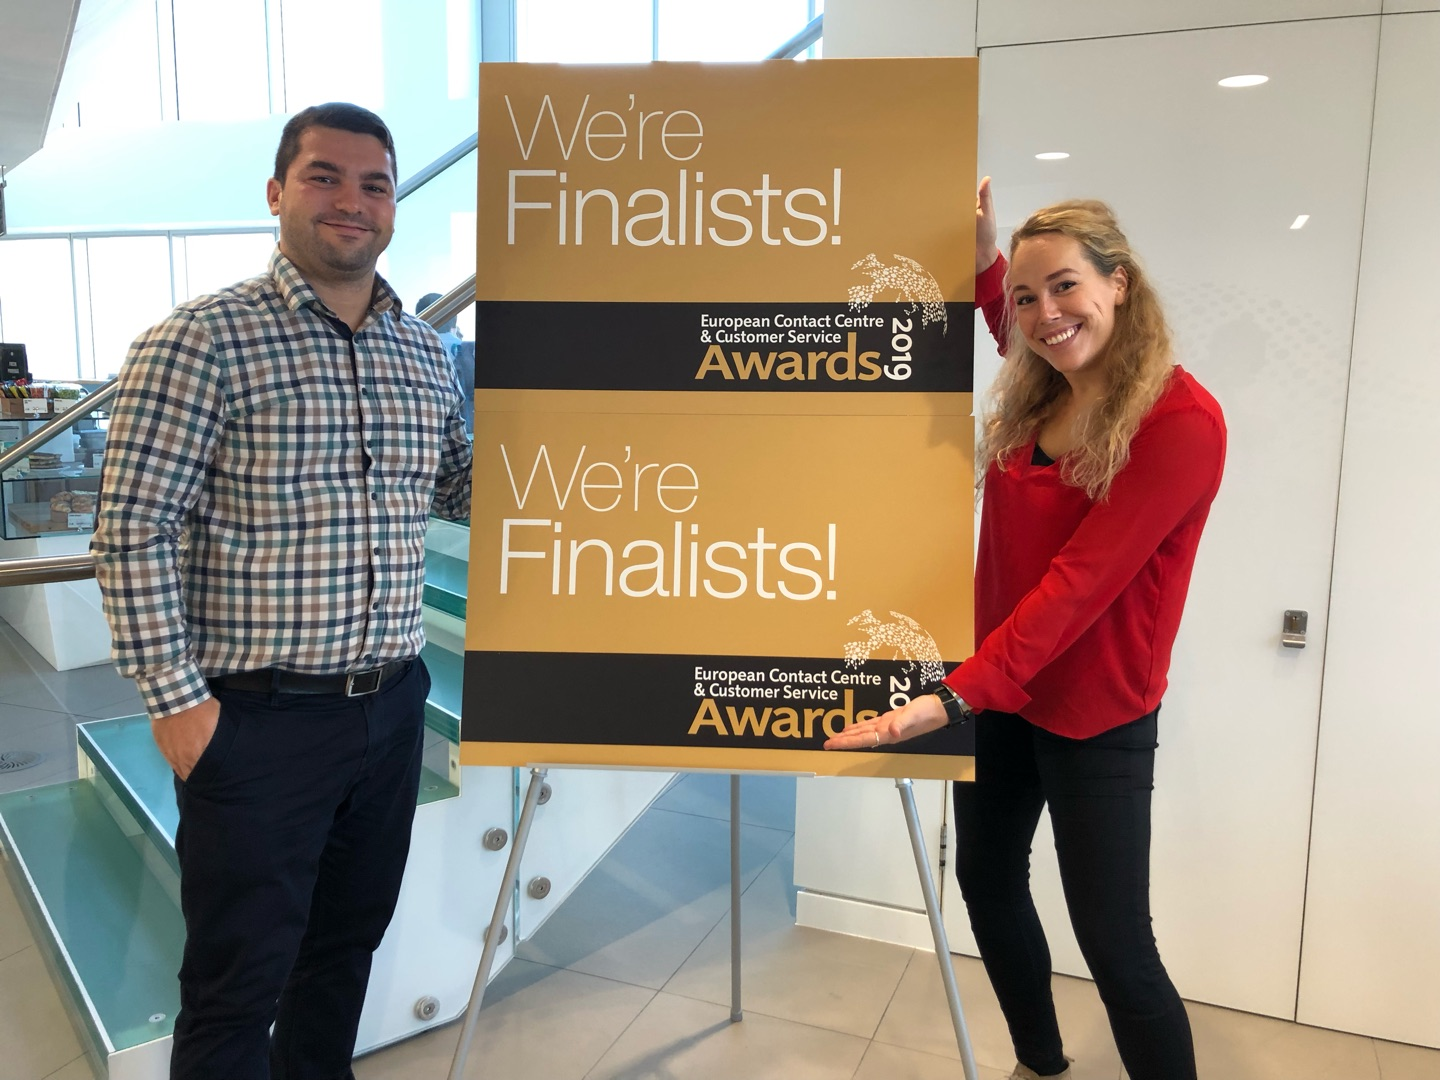 AnyTech365 visits London for the ECCCSA awards